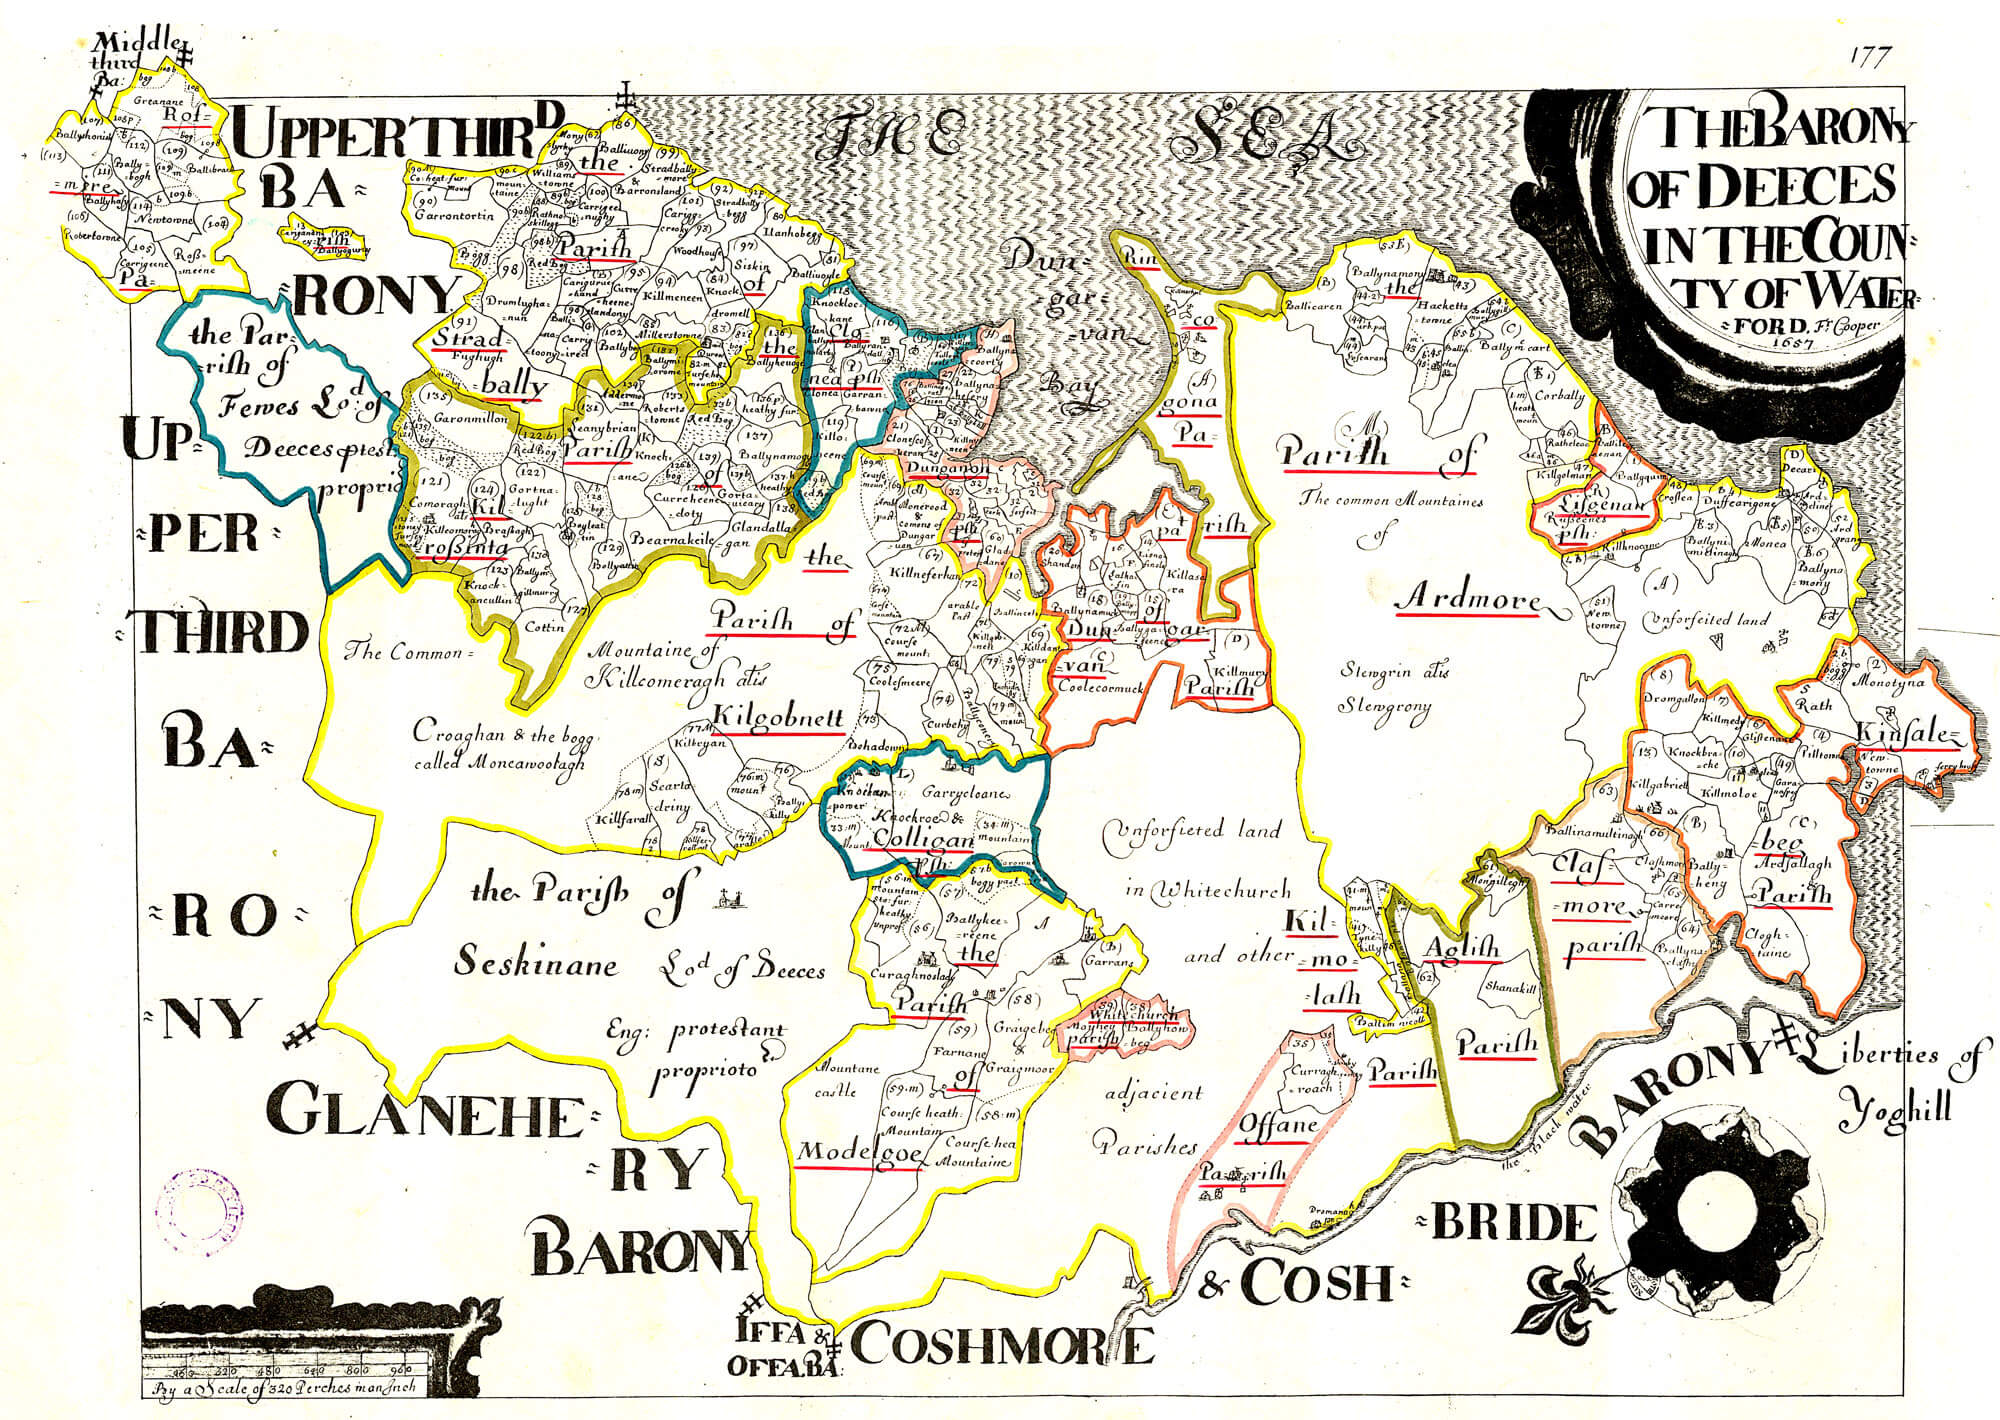 Map Of Waterford Ireland.Ireland Barony Maps County Waterford L Brown Collection